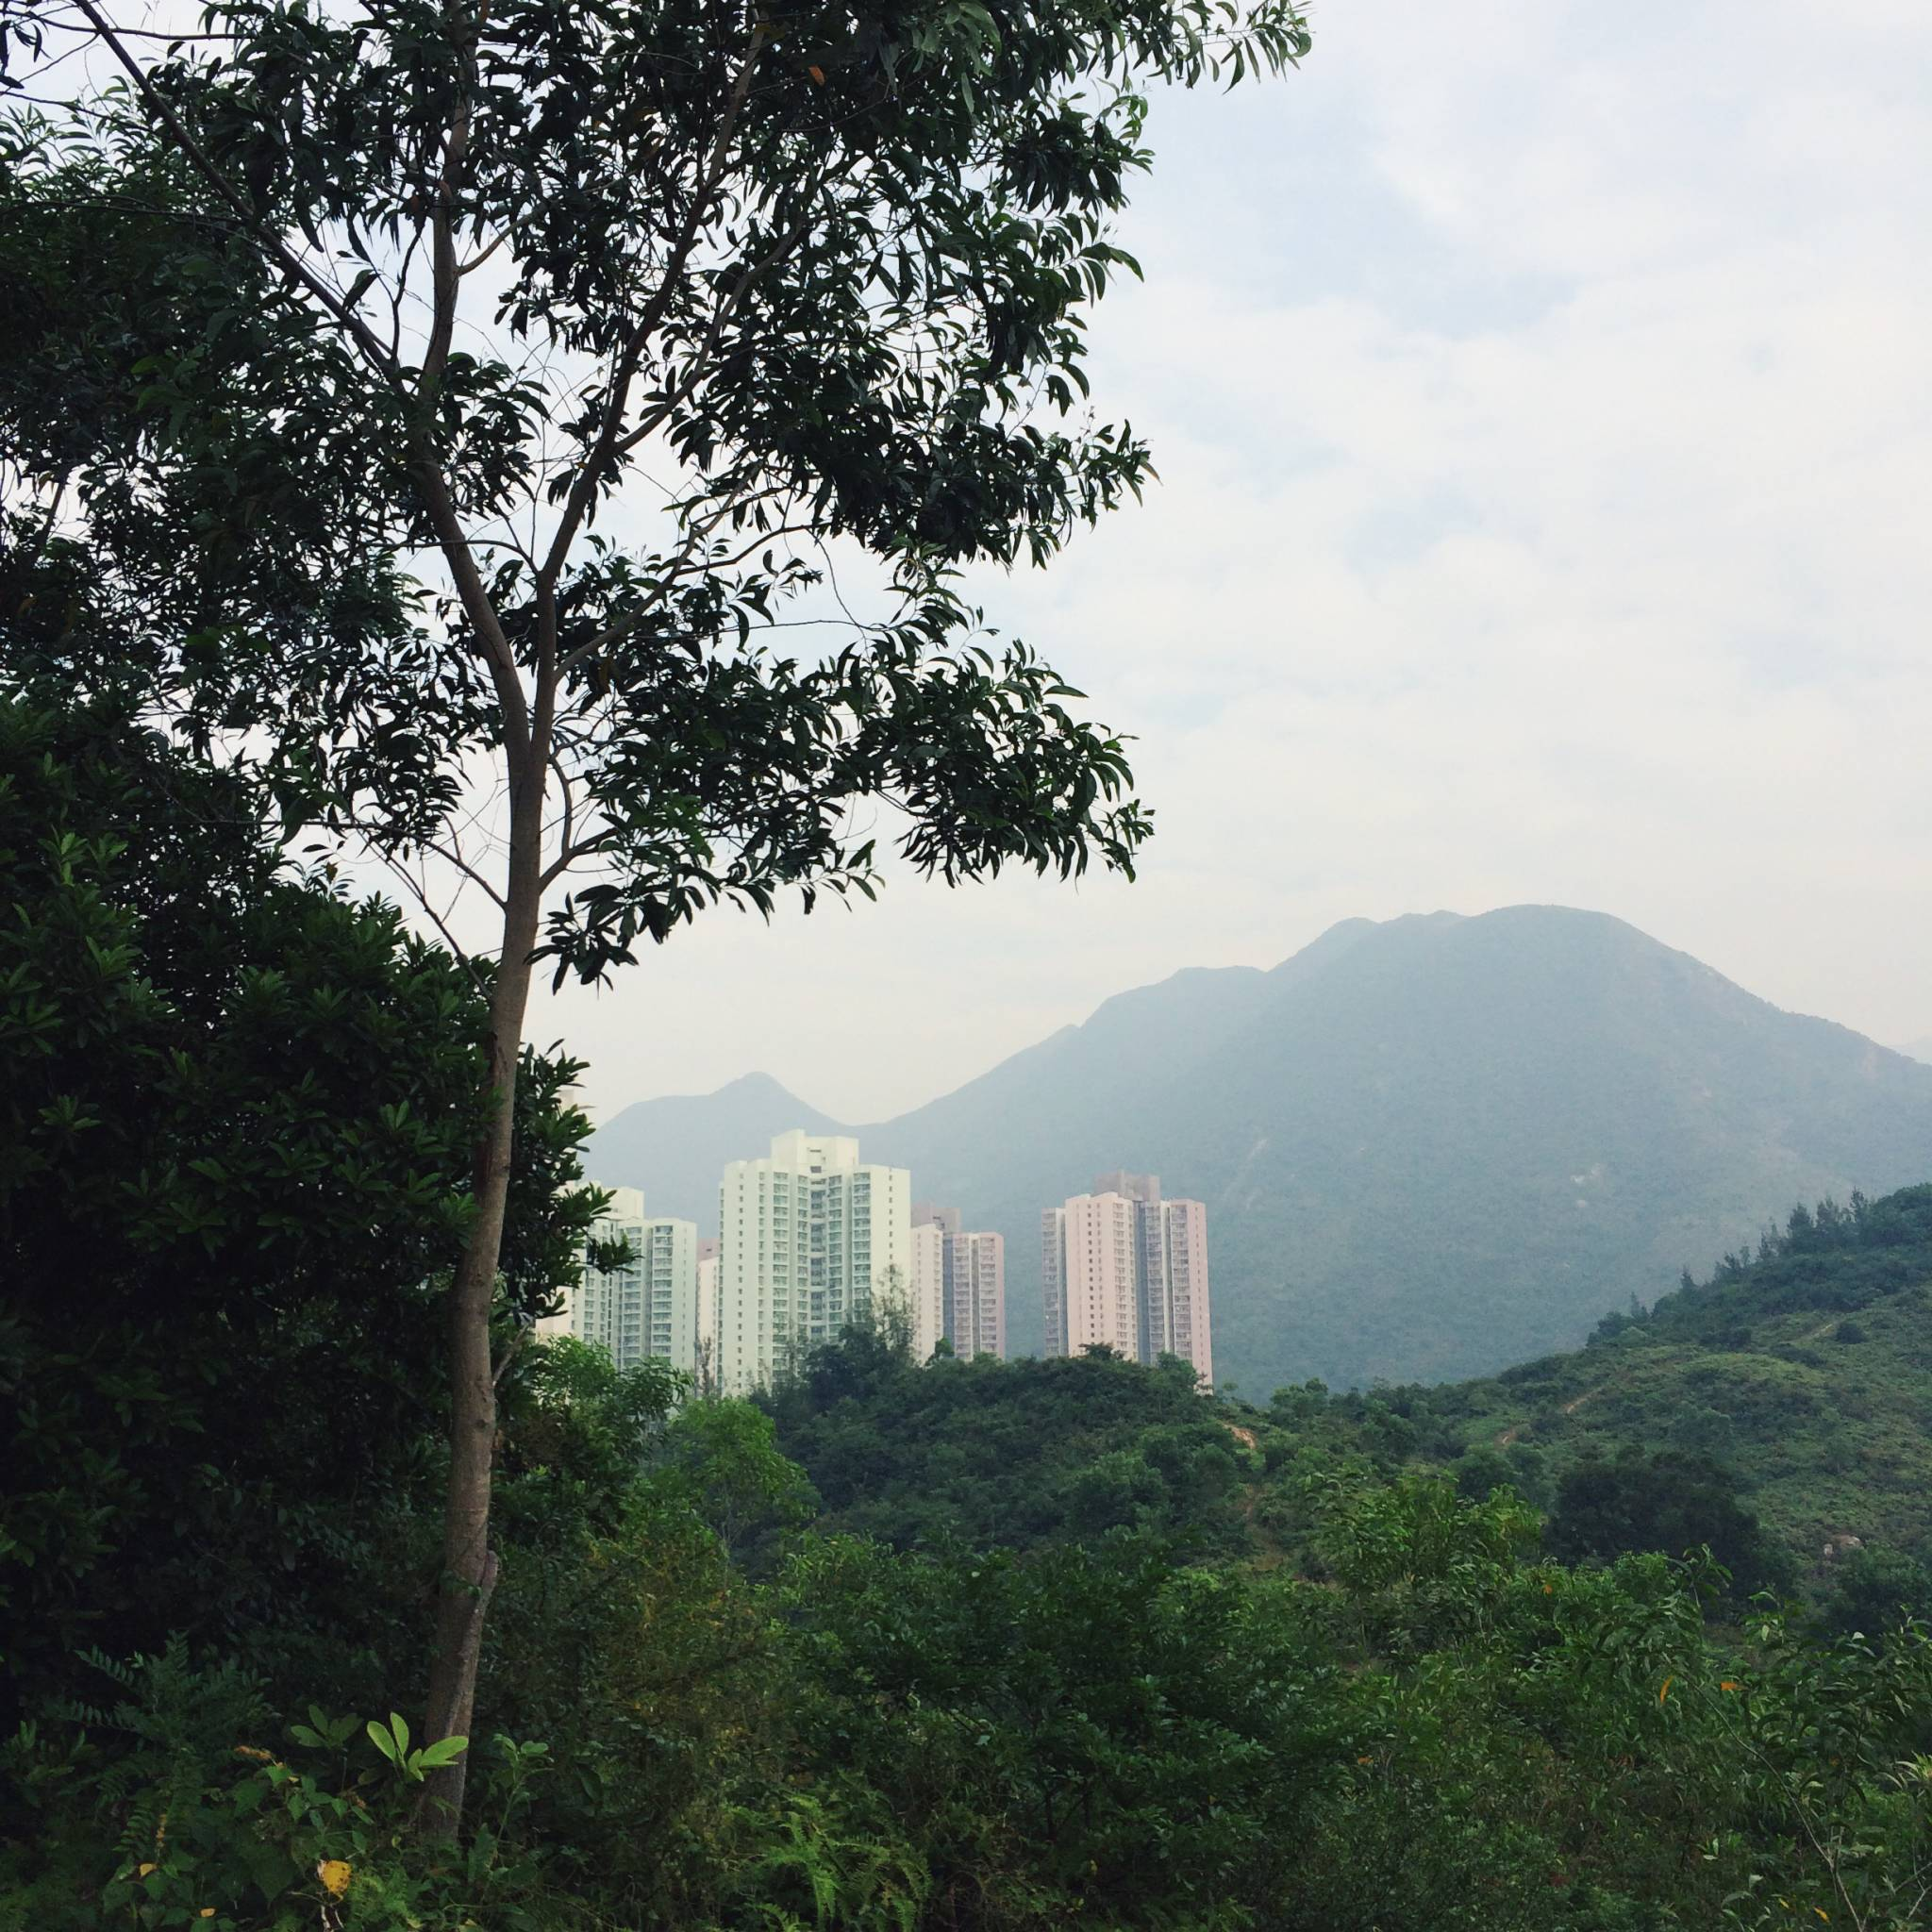 View of Tung Chung town